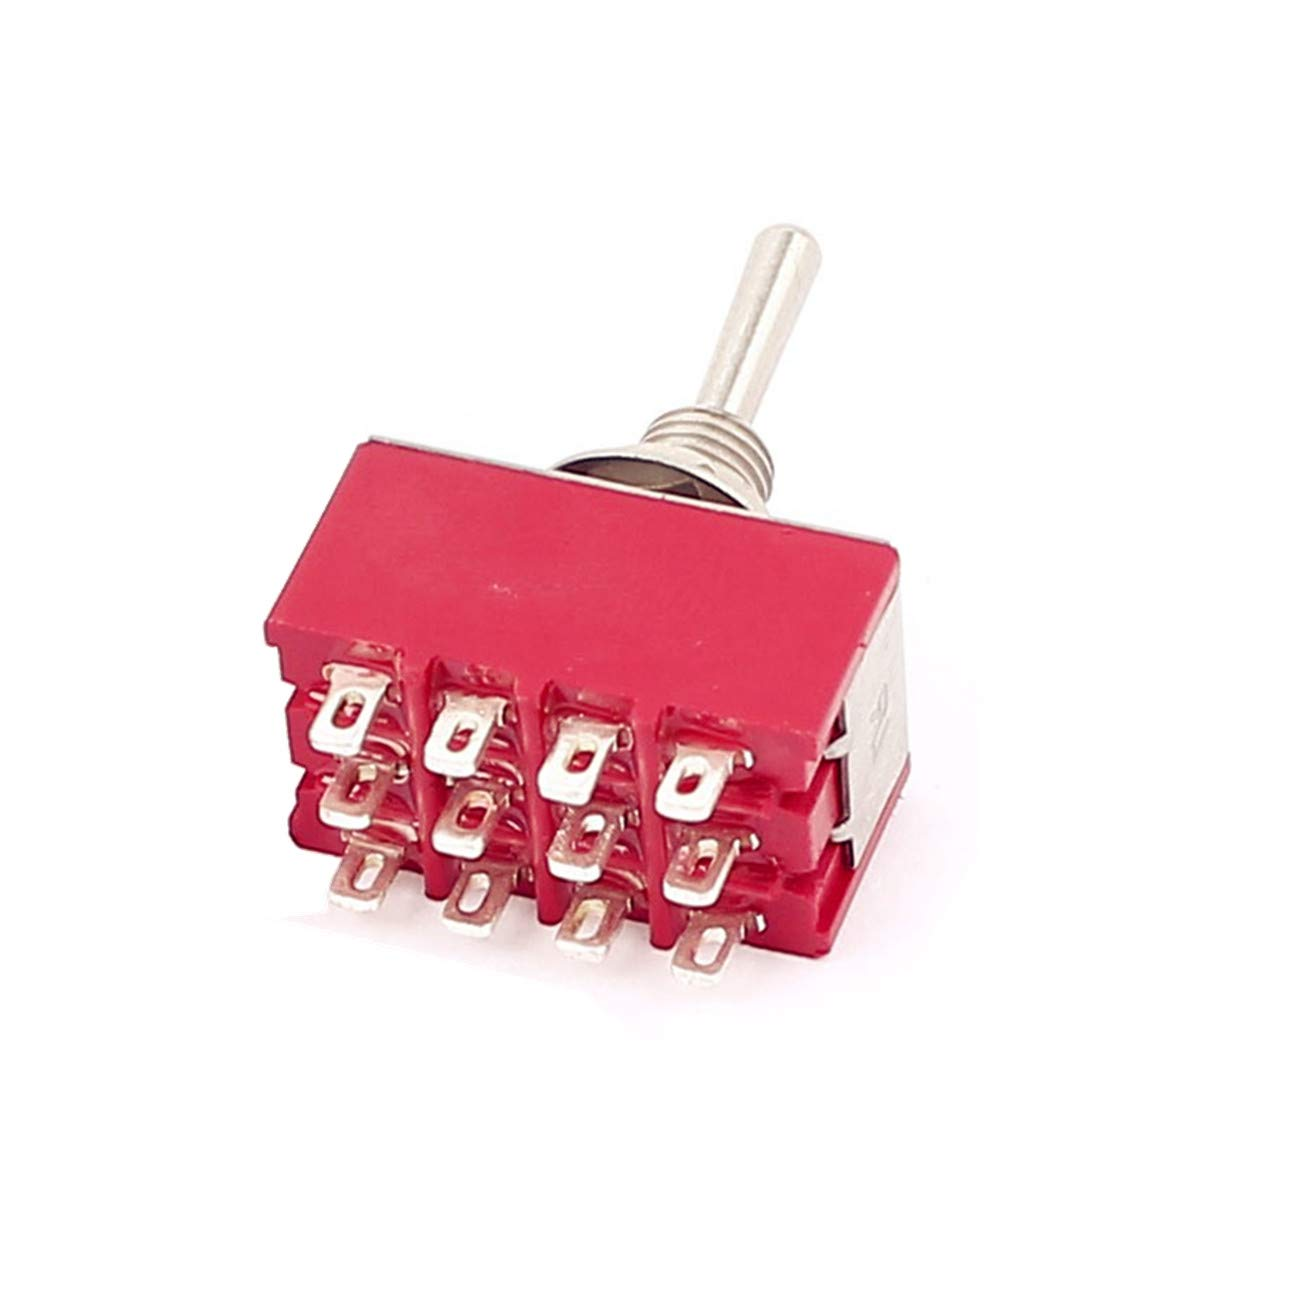 HLin 6A//125VAC 2A//250VAC 12 Pin 4PDT ON//ON 2 Position Mini MTS-402 Toggle Switch,Pack of 3